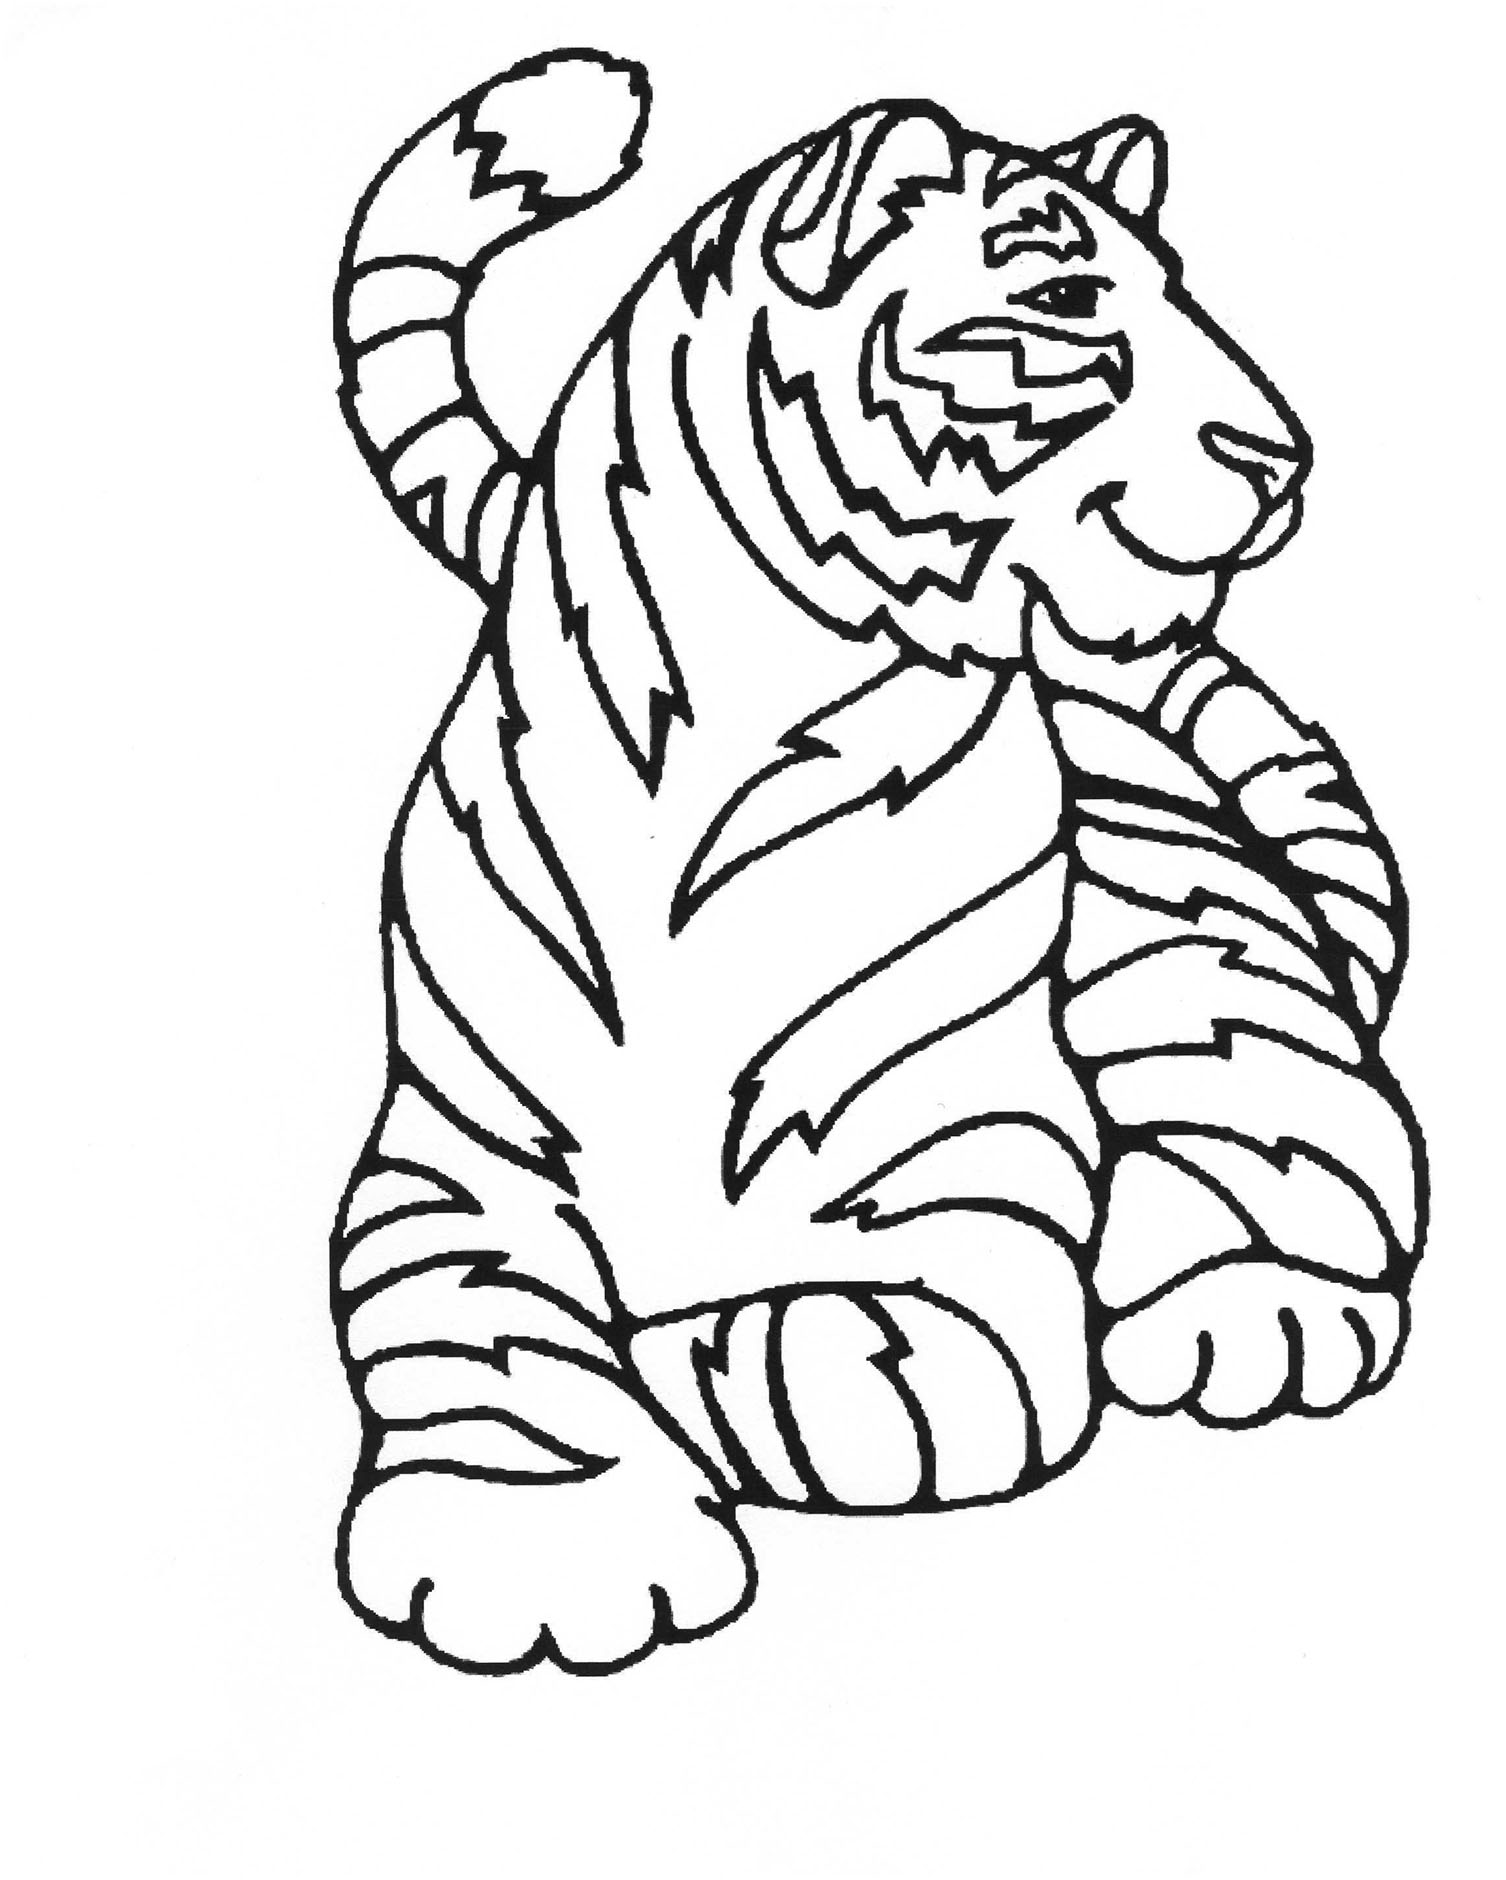 Tigers coloring page to print and color